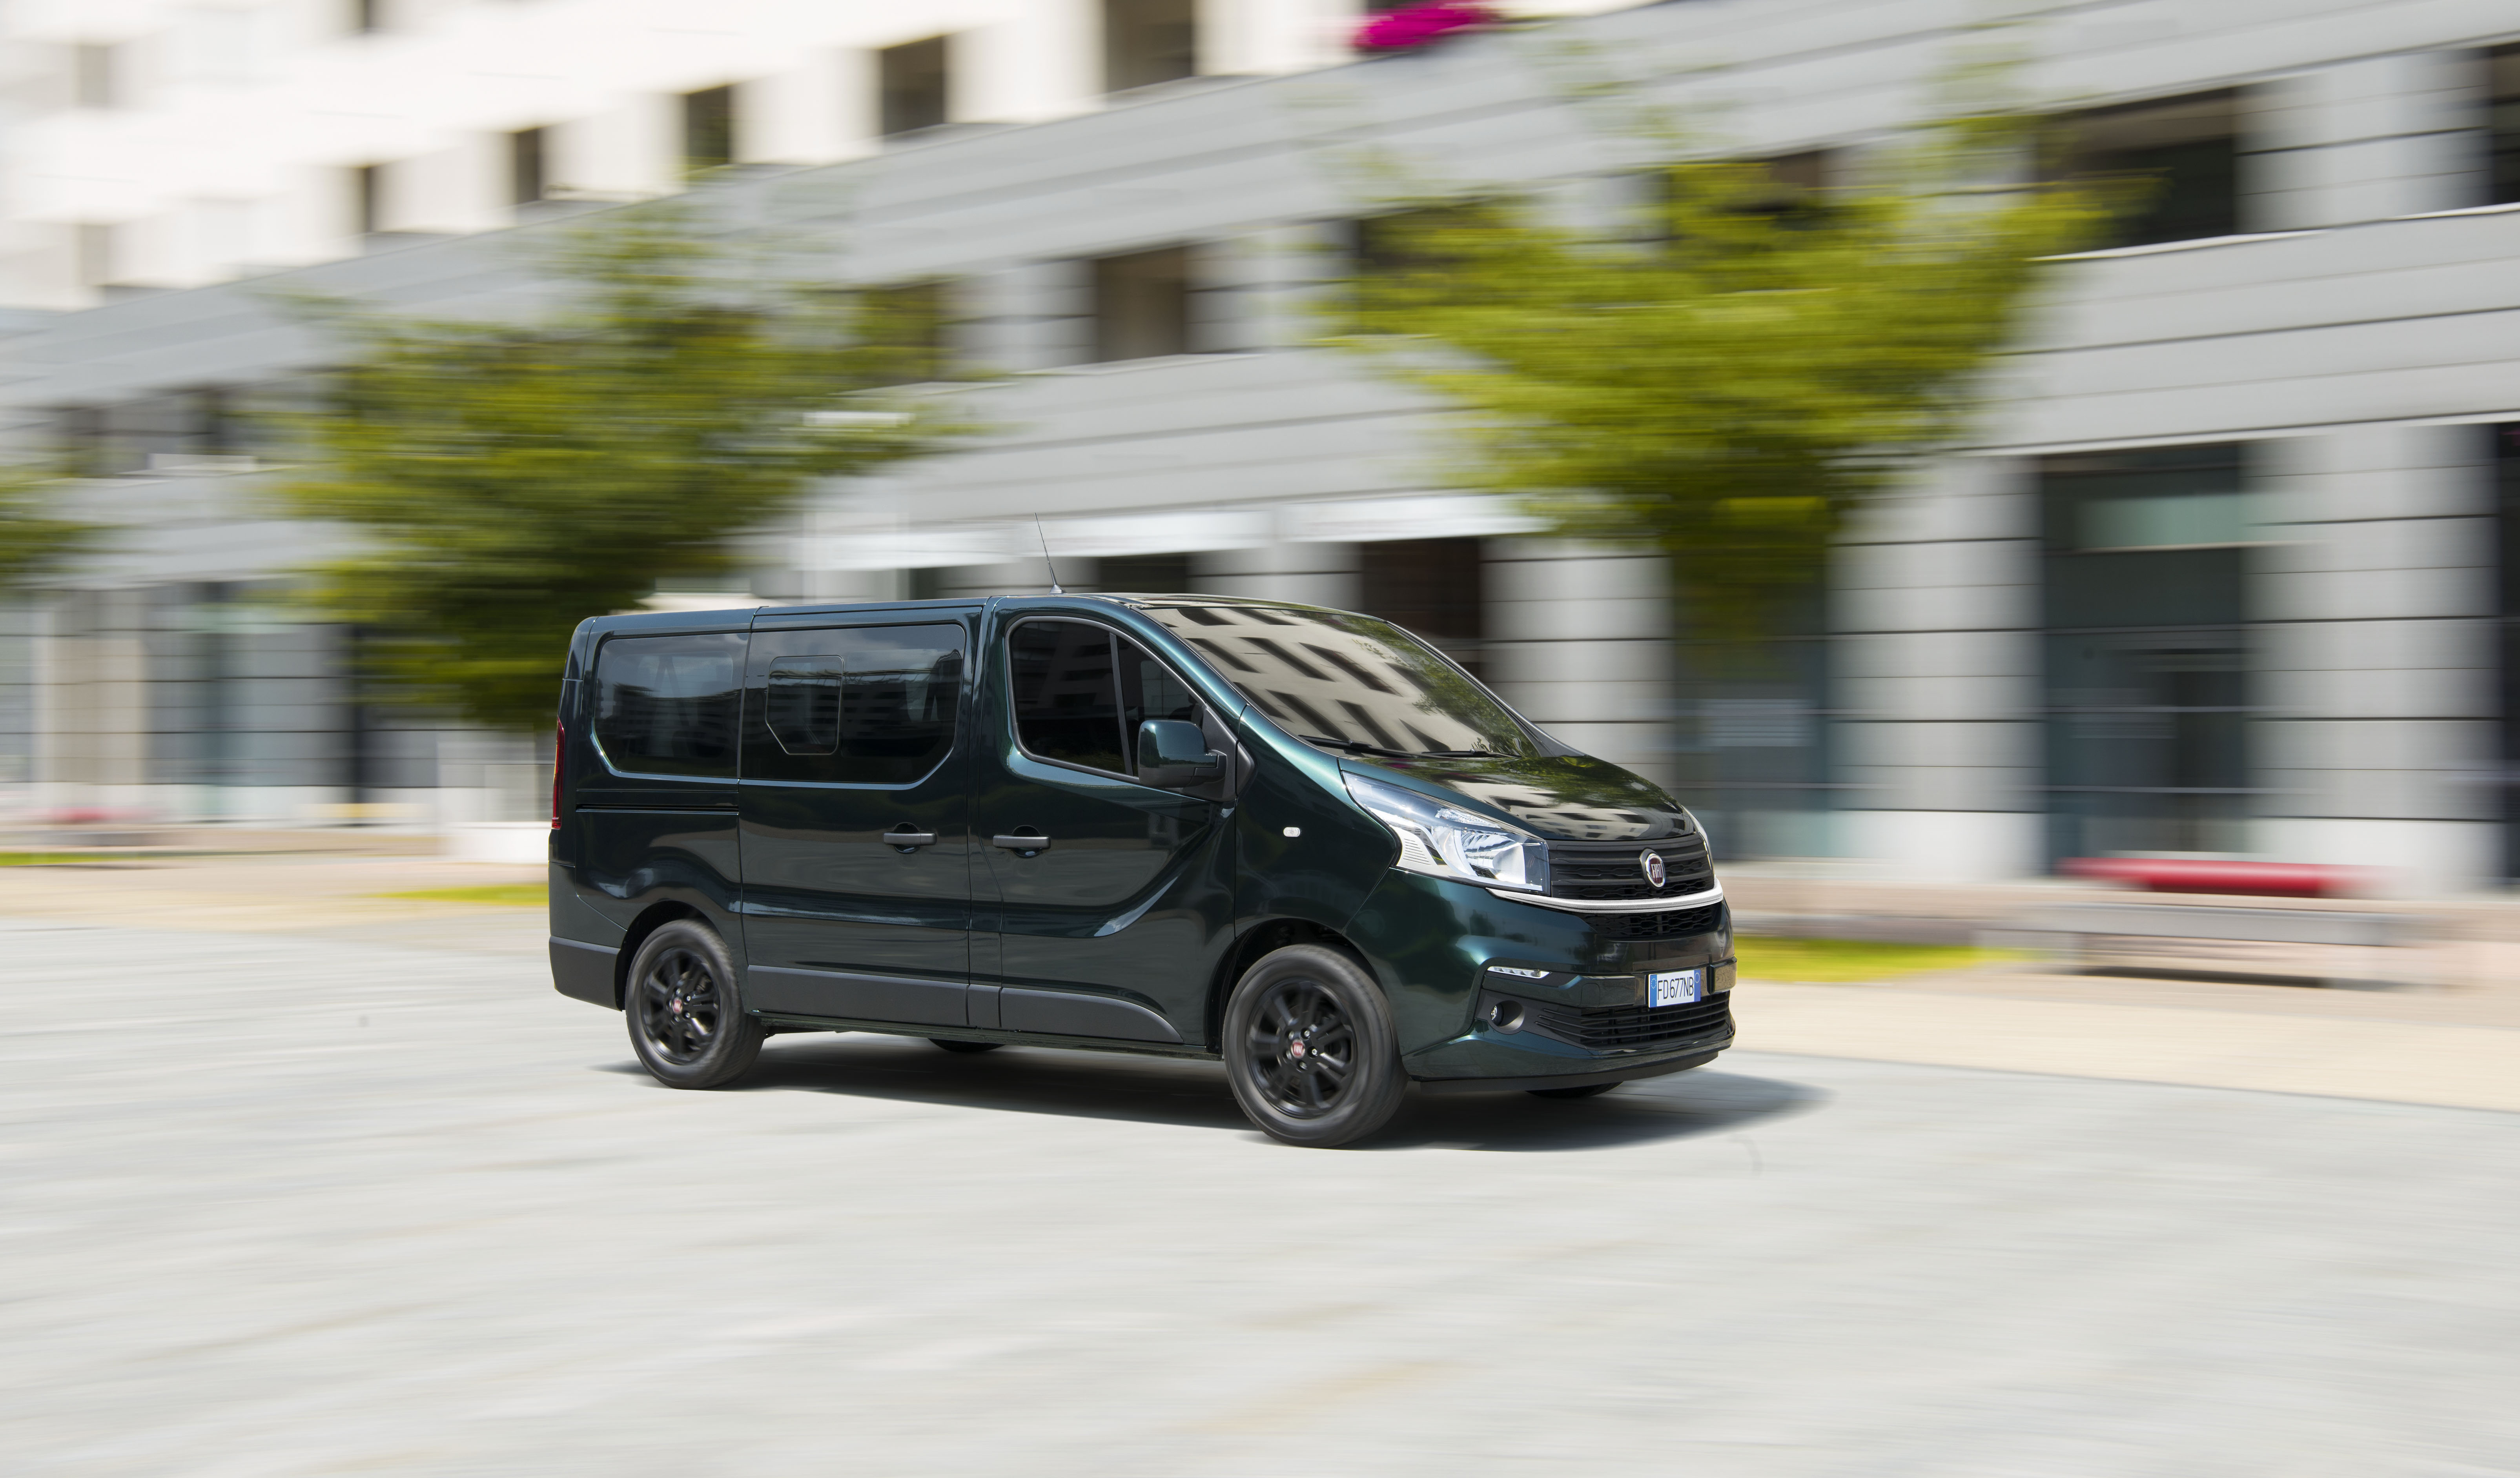 essai fiat talento combi 1 6 ecojet 125 ch entre deux chaises link2fleet for a smarter mobility. Black Bedroom Furniture Sets. Home Design Ideas